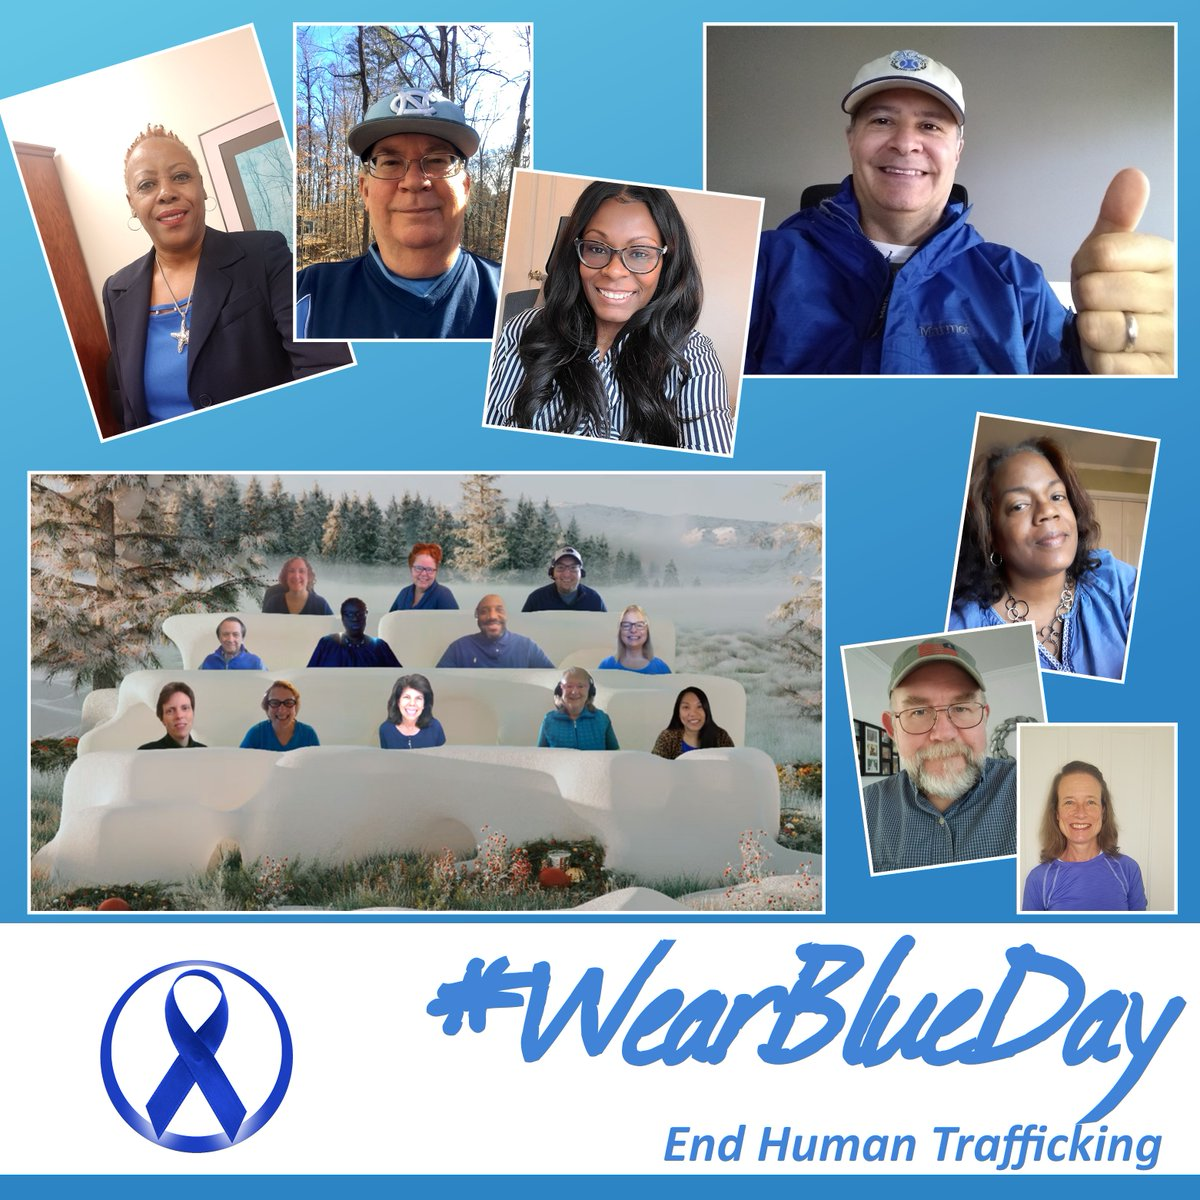 Today, OSHR staff donned their different shades of blue for #WearBlueDay in recognition of #HumanTraffickingAwarenessMonth. It's time to #EndHumanTrafficking @CouncilNC